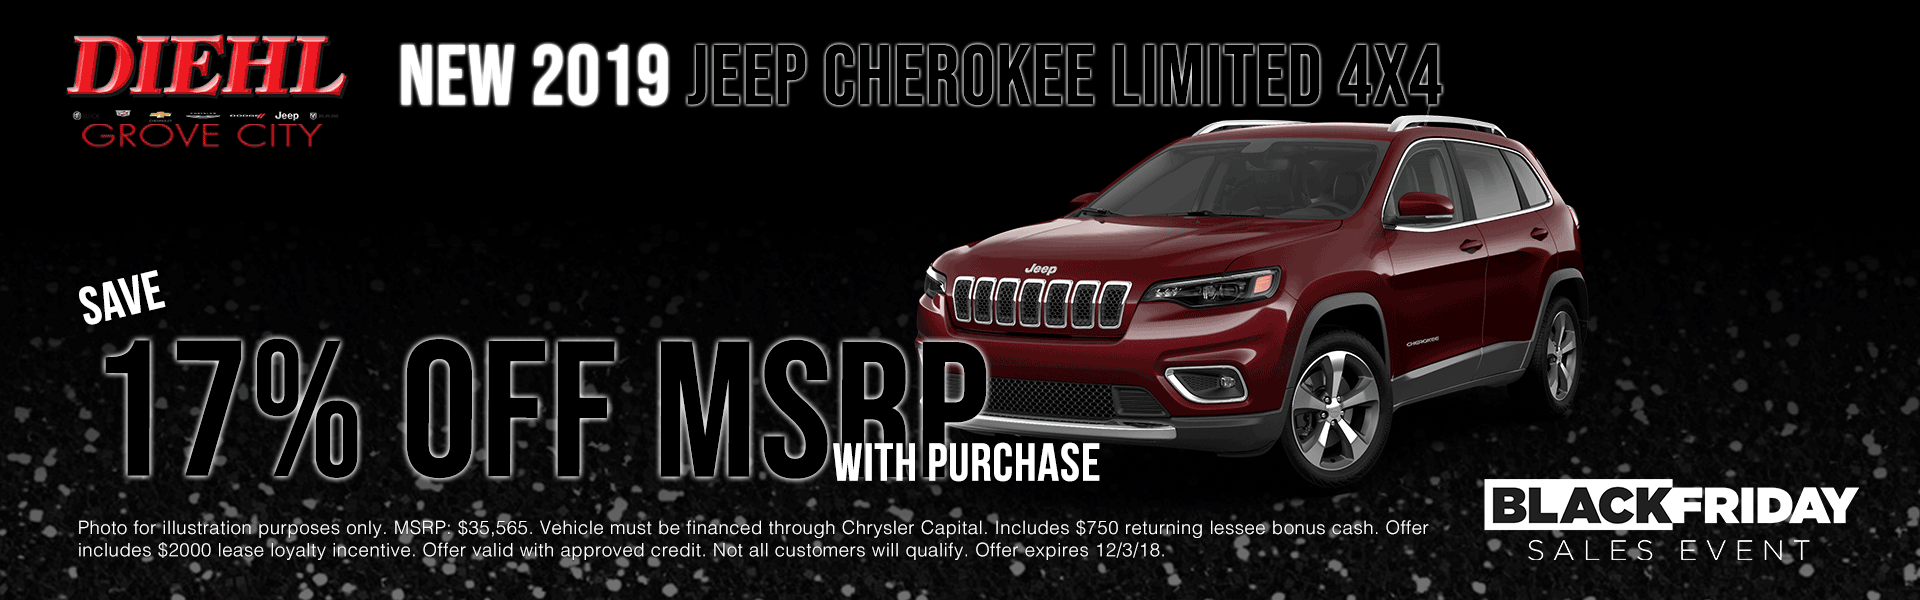 J1092 new 2019 Jeep Cherokee Limited new car special lease special purchase new car special diehl of grove city specials new vehicle specials ram specials jeep specials dodge specials chrysler specials new specials ram city sale